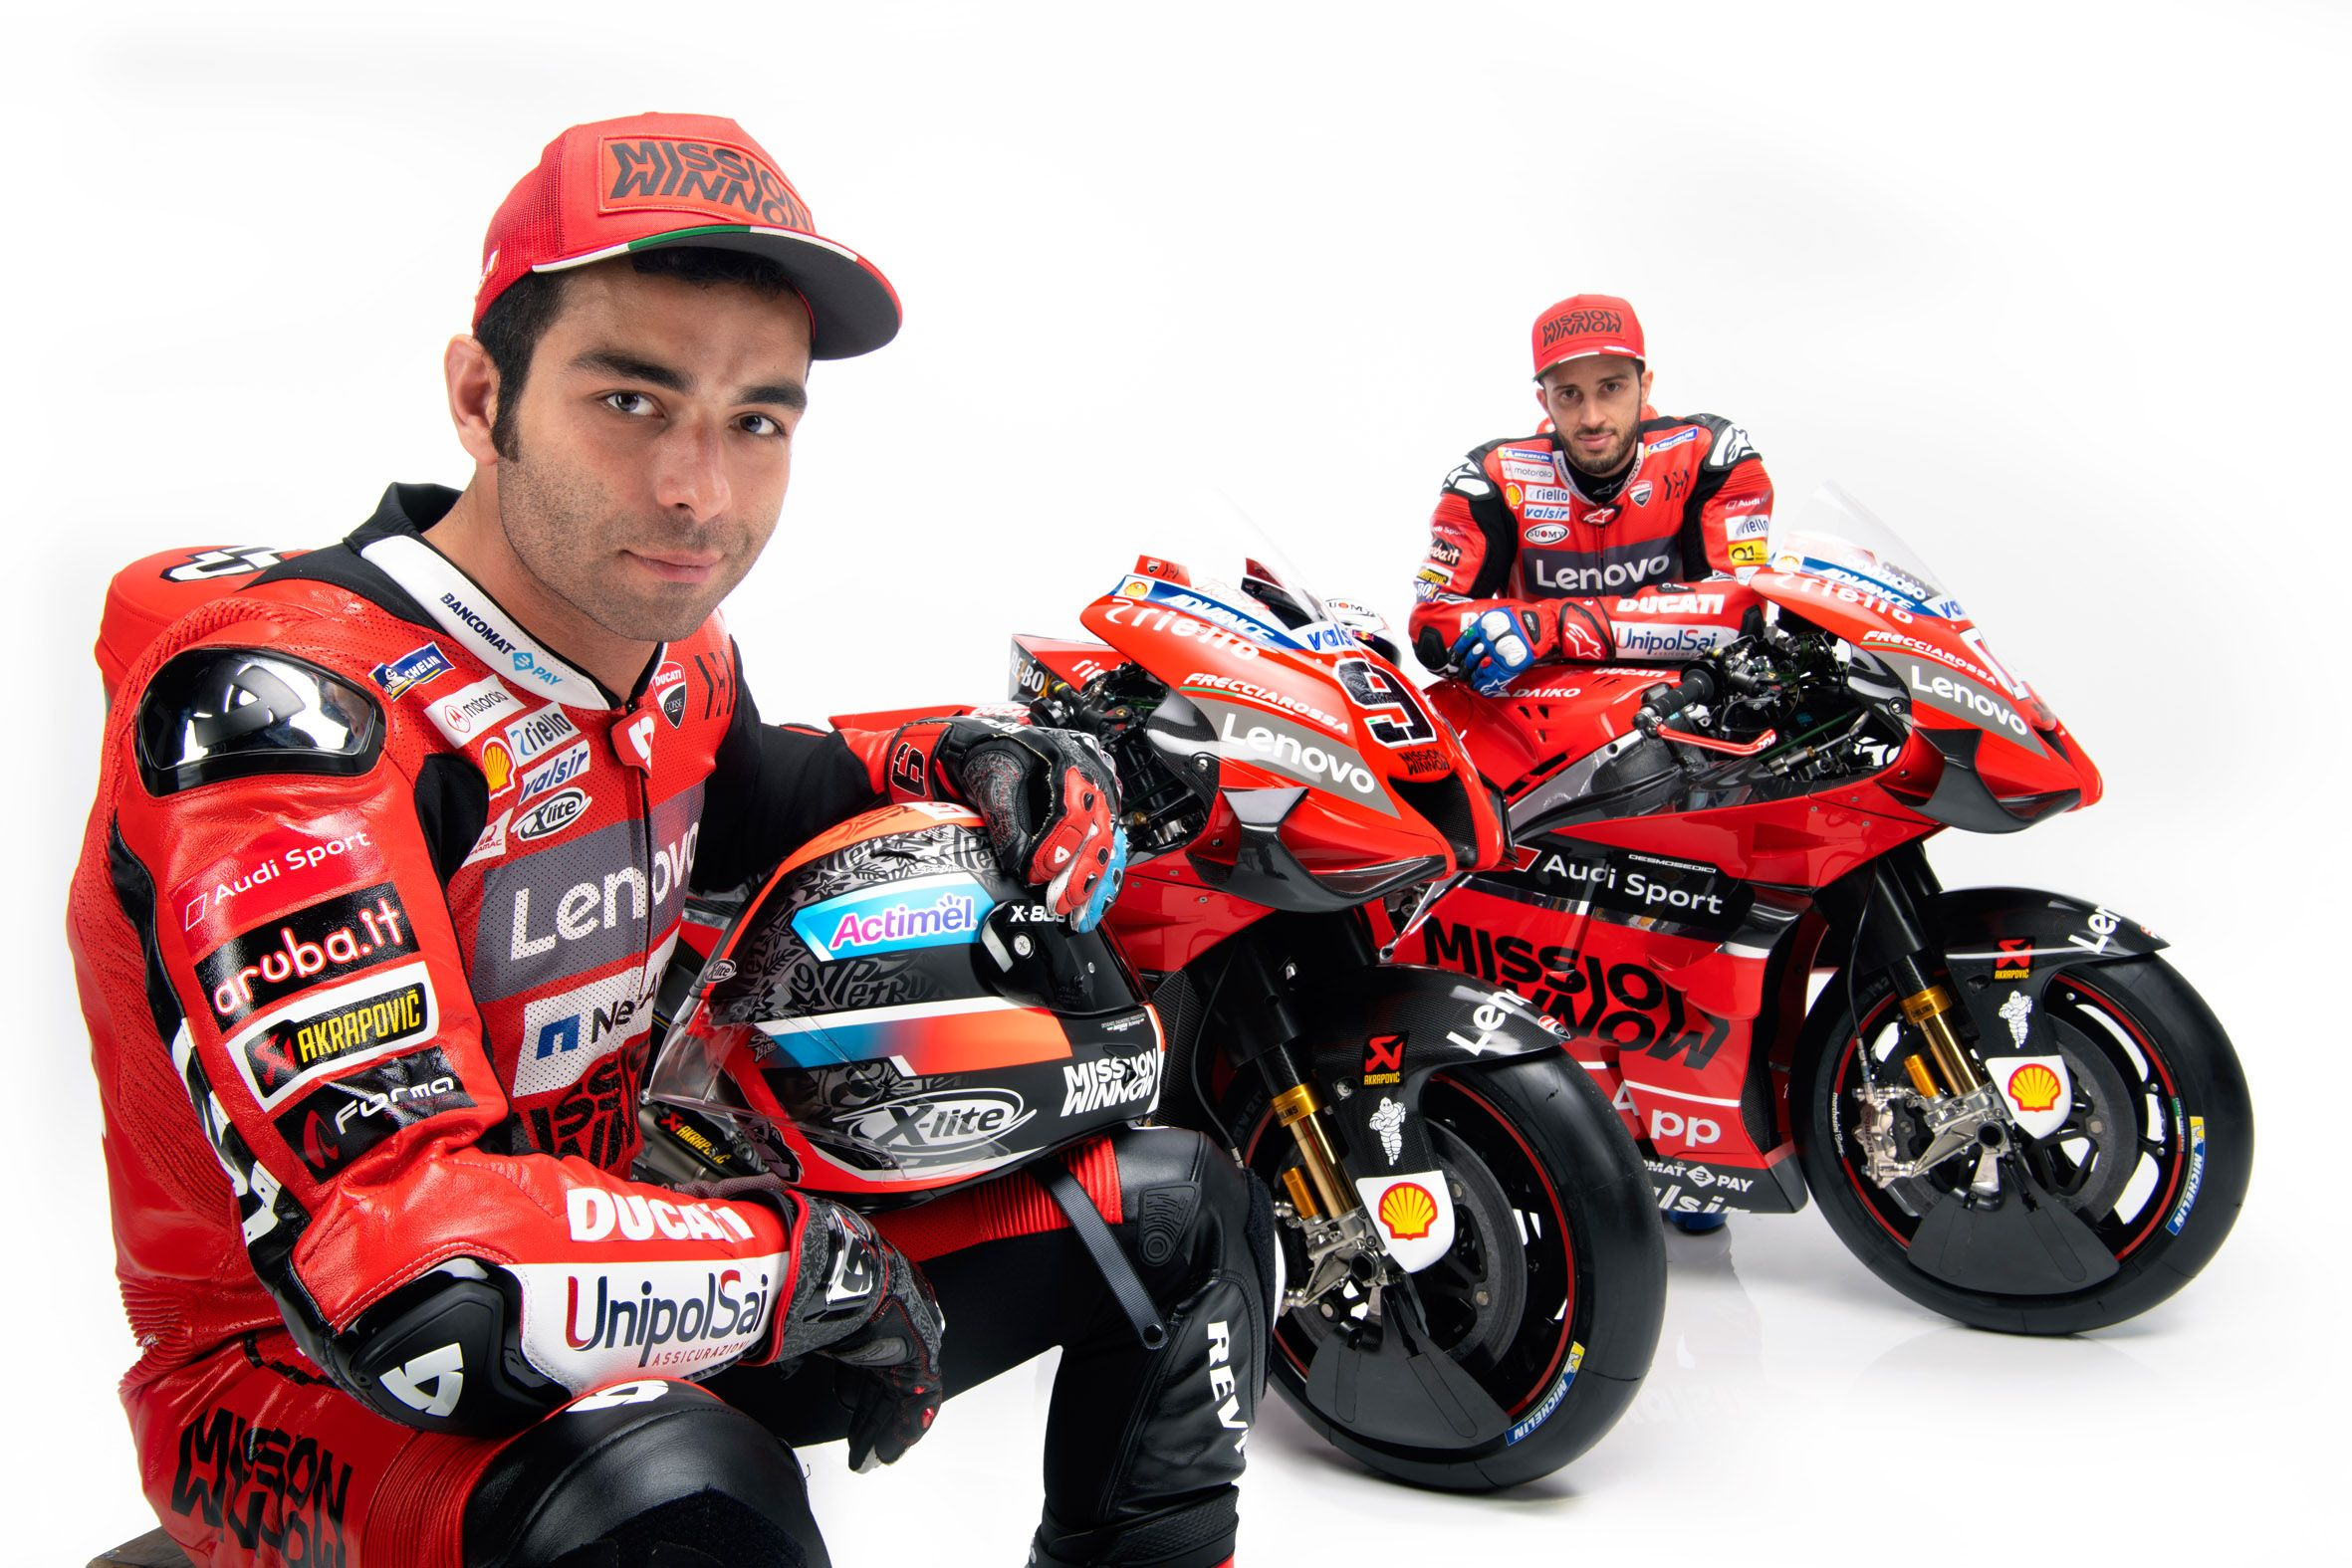 Aruba Confirmed As Official Partner Of The Ducati Team For The 2020 Motogp World Championship Bergamo 29th January 2020 In 2020 Motogp World Championship Ducati